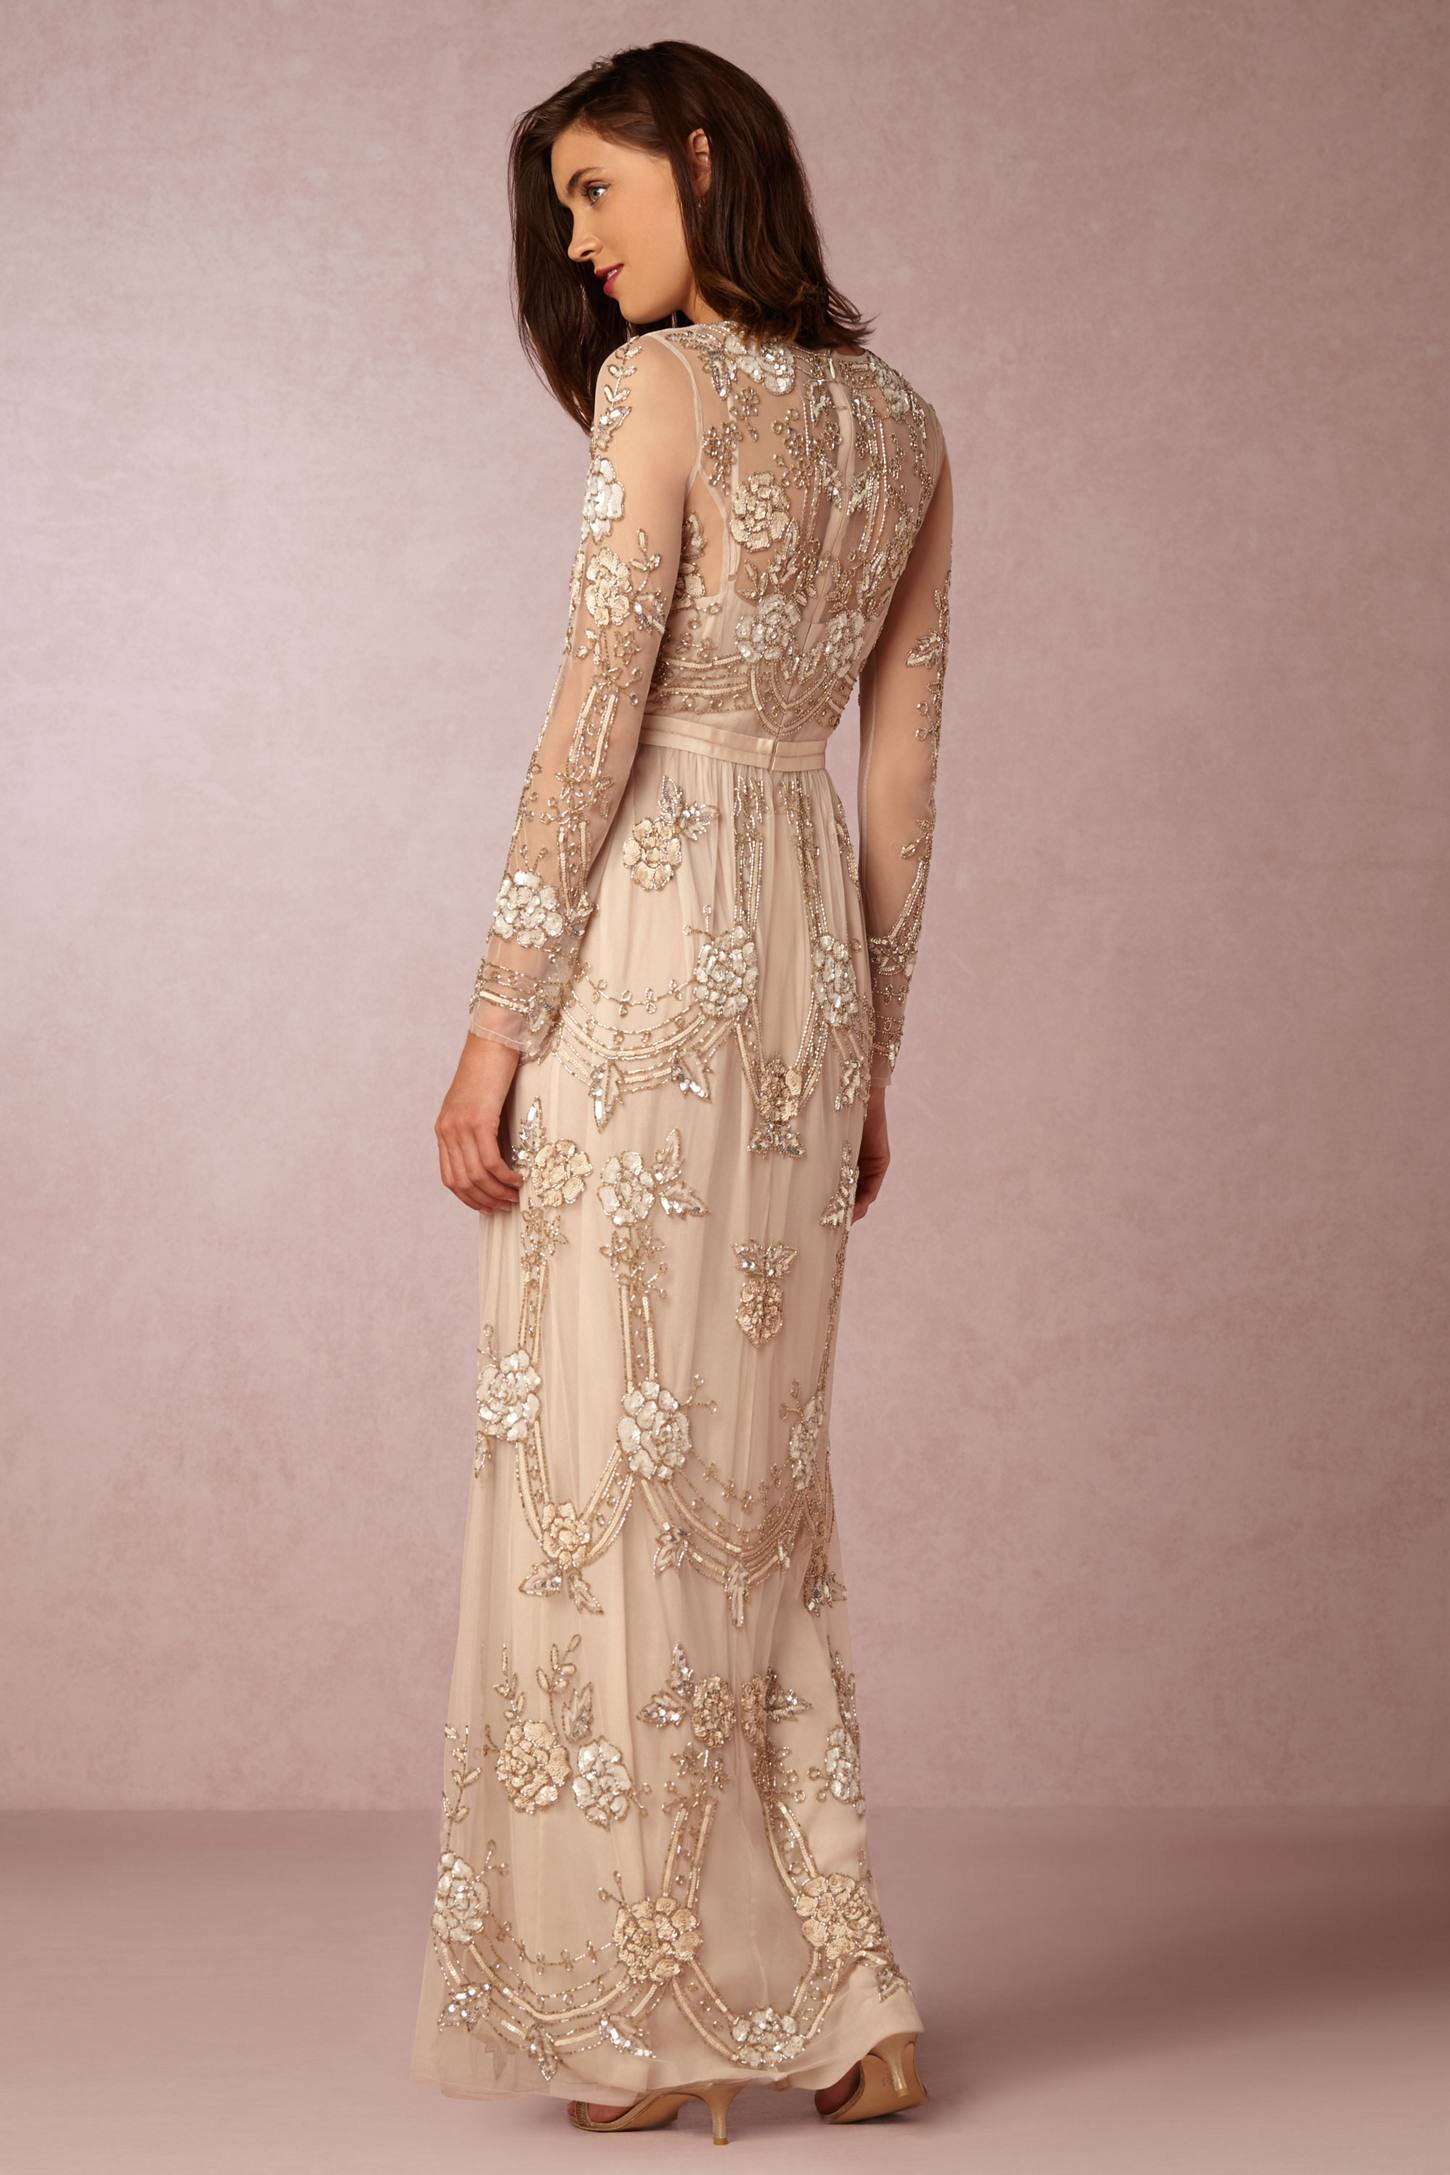 Adona dress anthropologie for Anthropologie beholden wedding dress